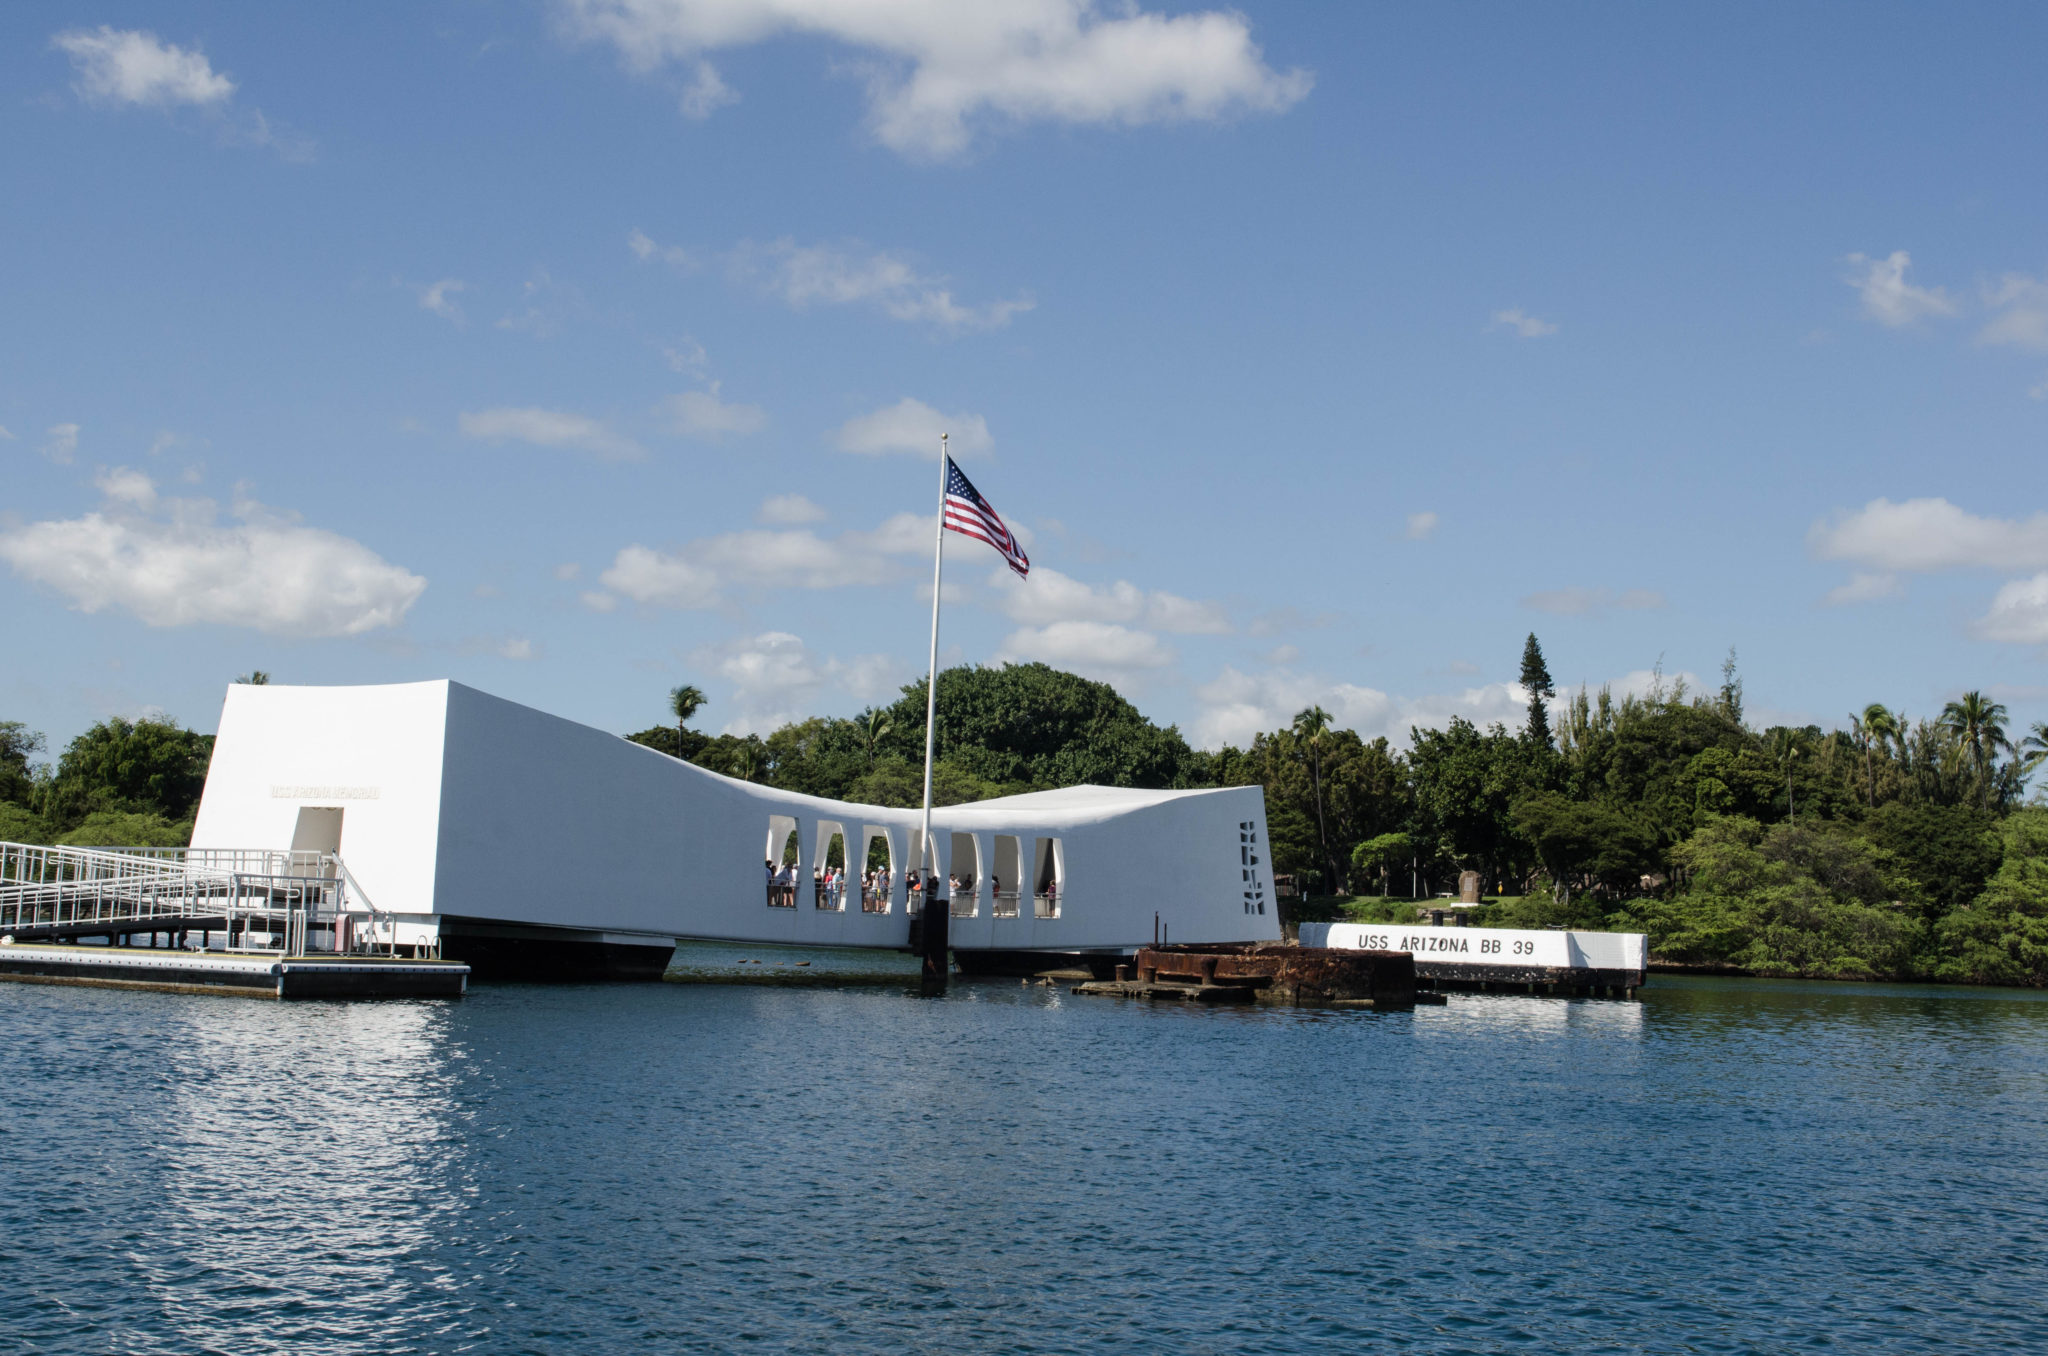 Hawaii Guide: One of the things to do in Hawaii is to visit Pearl Harbour.